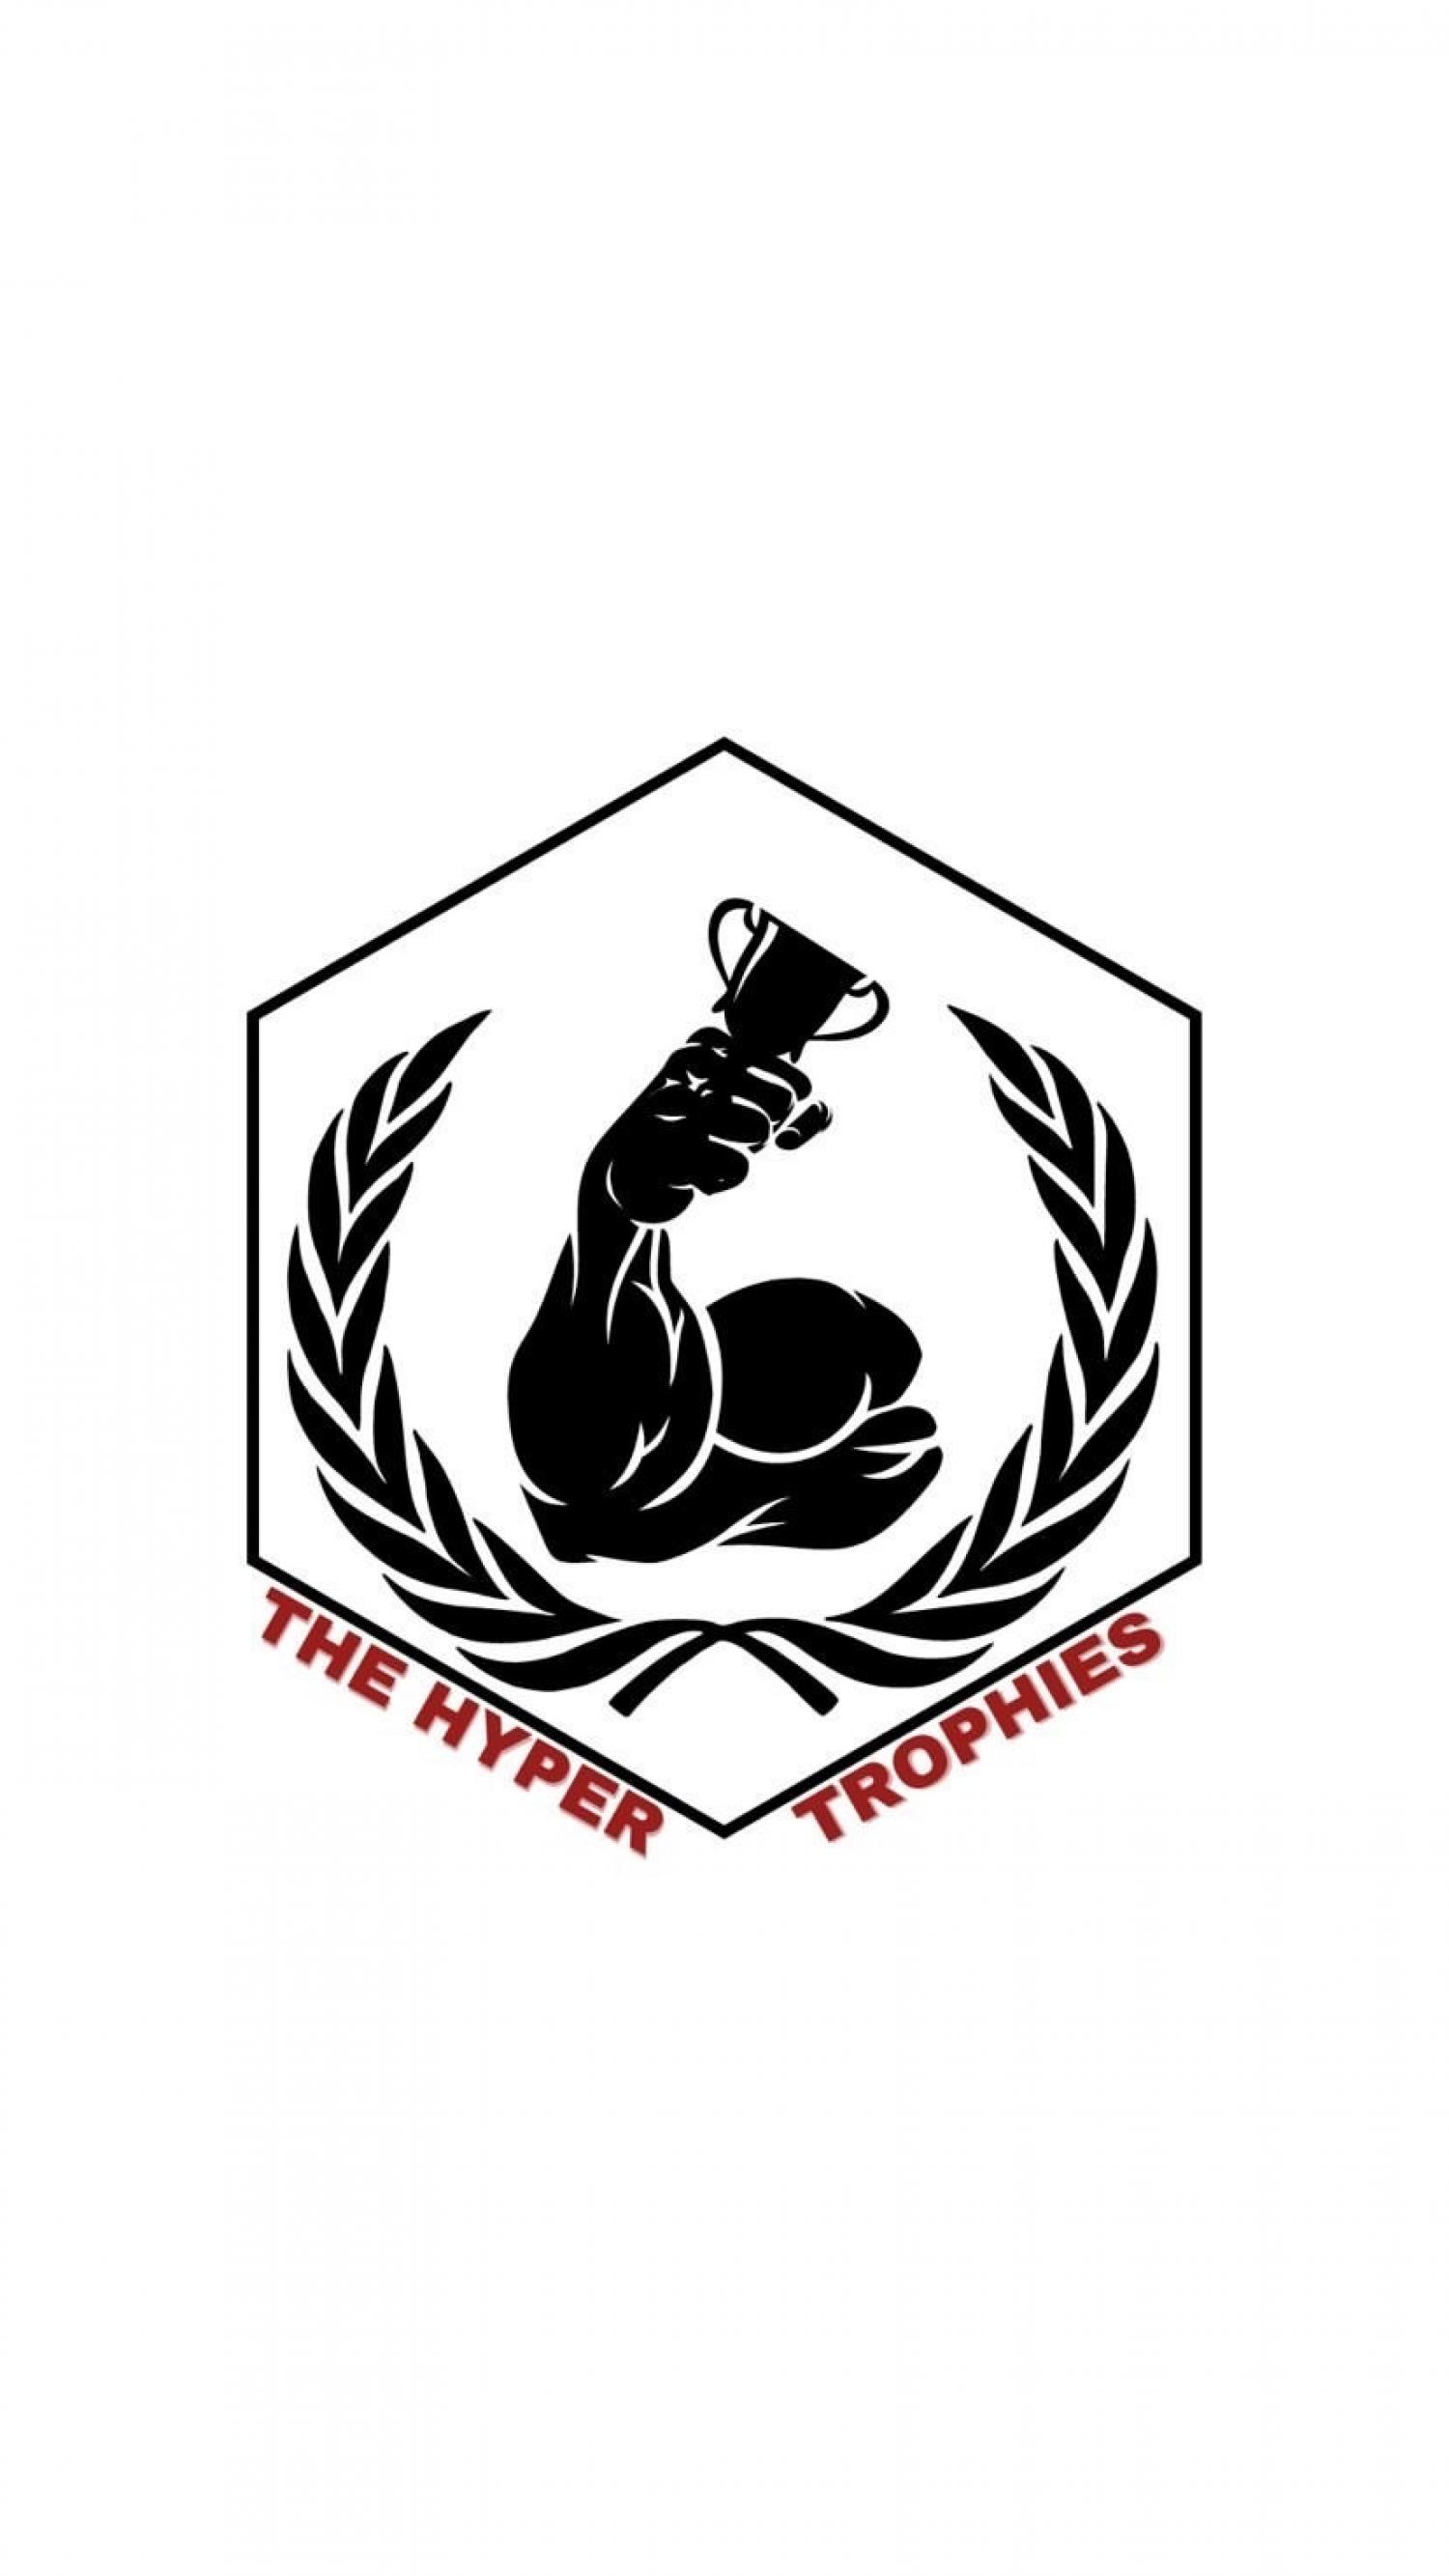 The Hyper Trophies